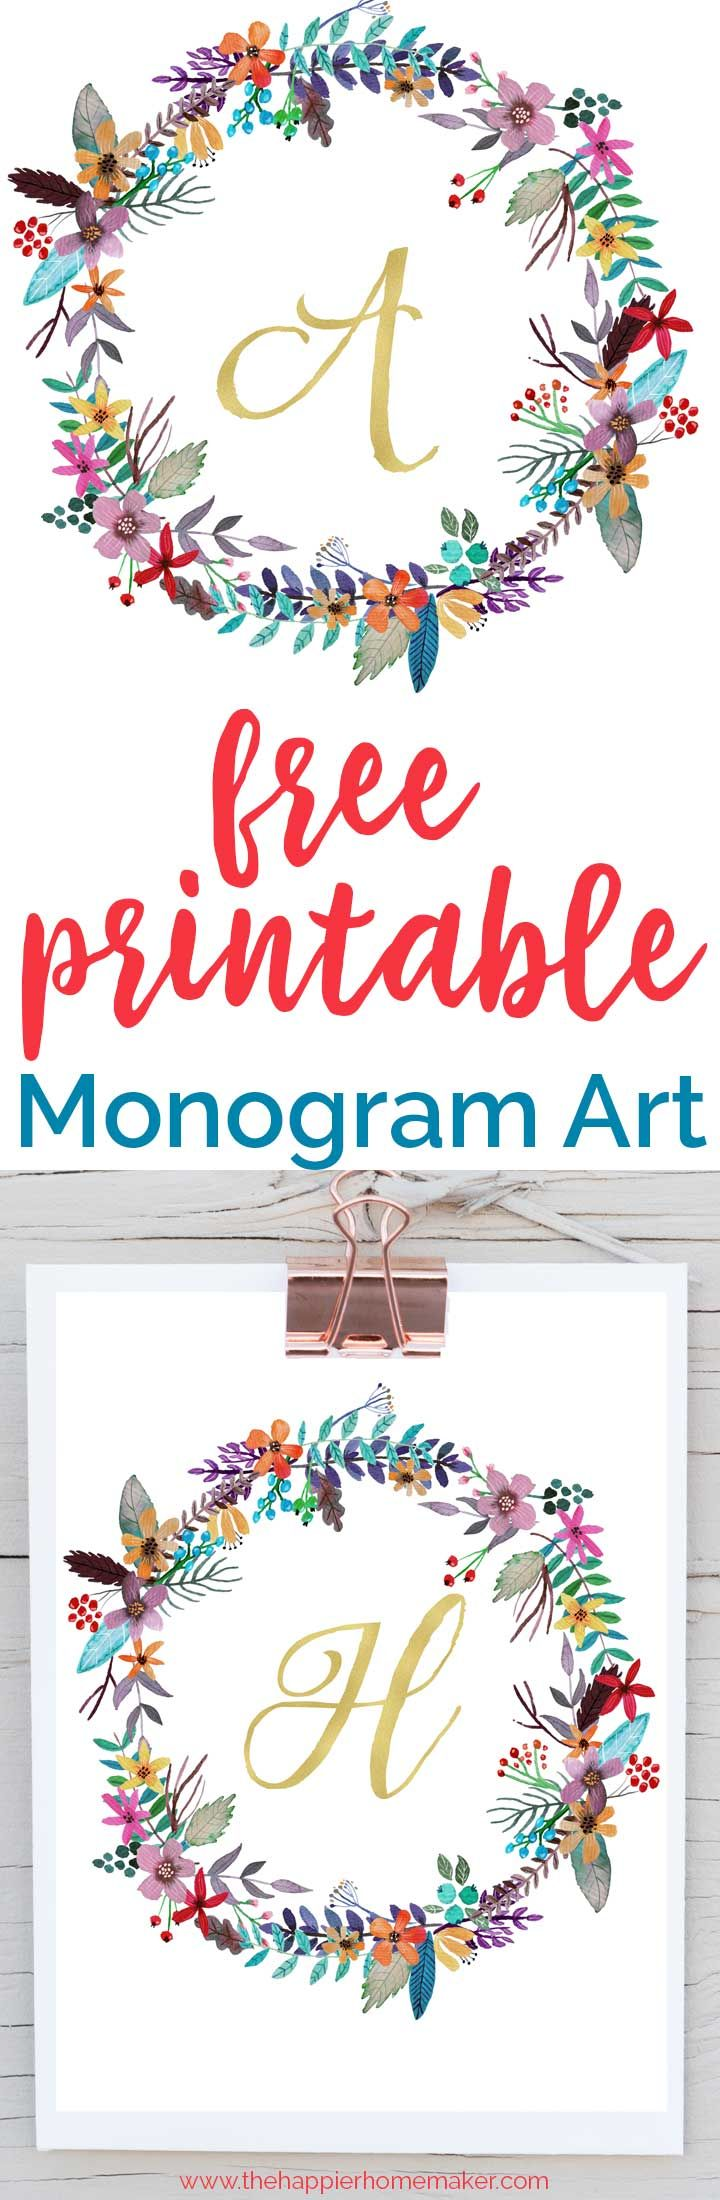 image regarding Free Printable Monogram named Do-it-yourself Crafts : Appealing cost-free printable monogram artwork for your